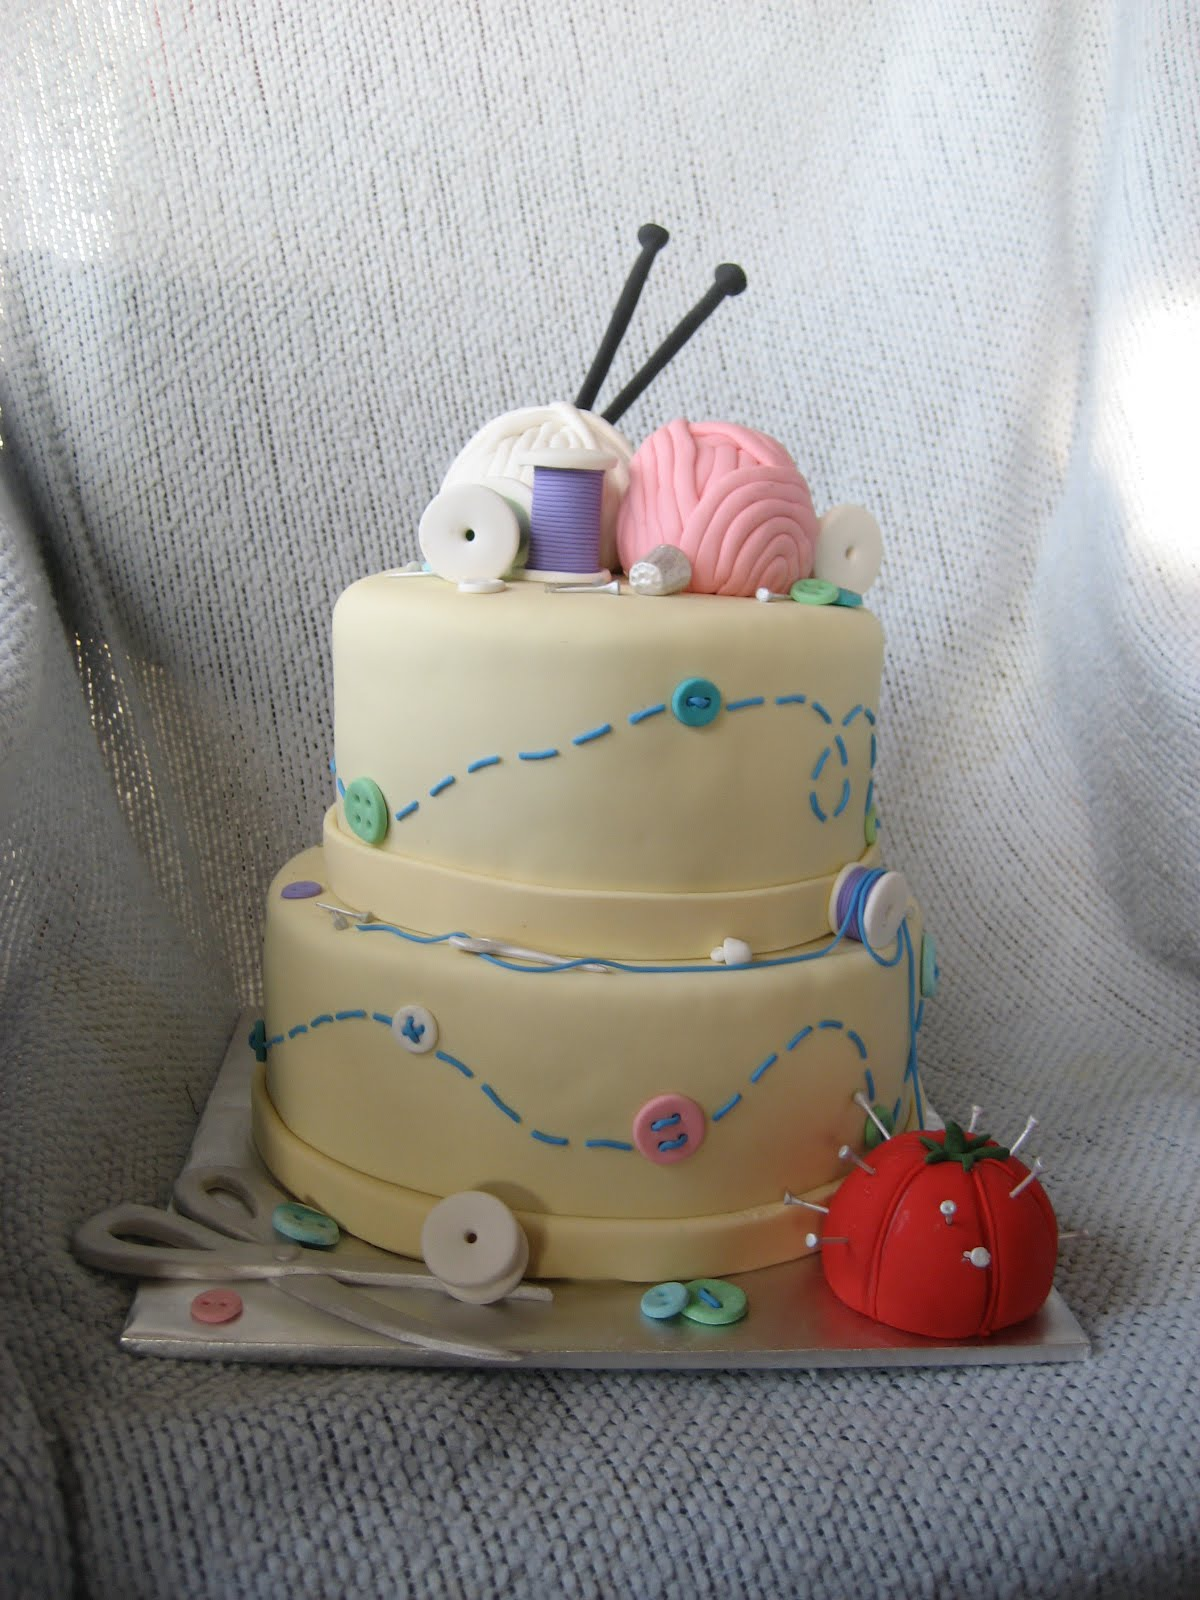 1000+ images about Knitting Cakes on Pinterest | Knitting ...